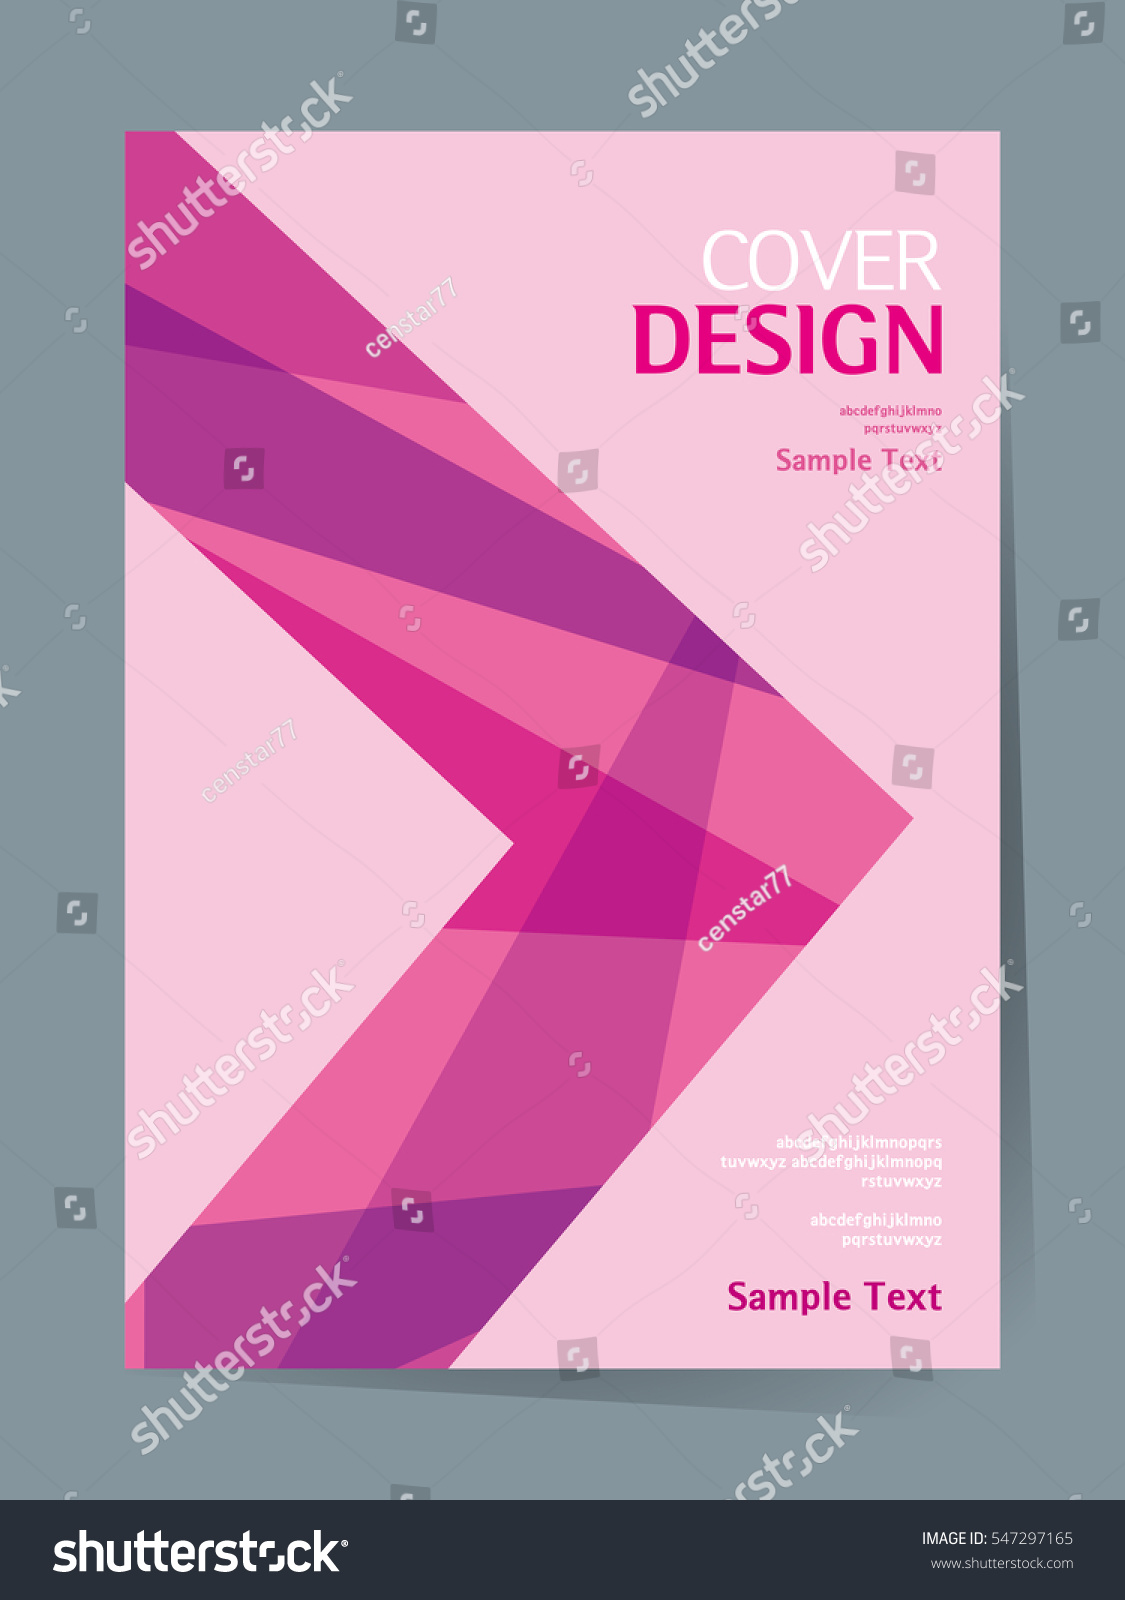 Book Cover Layout Levels ~ Book cover design vector template a stock